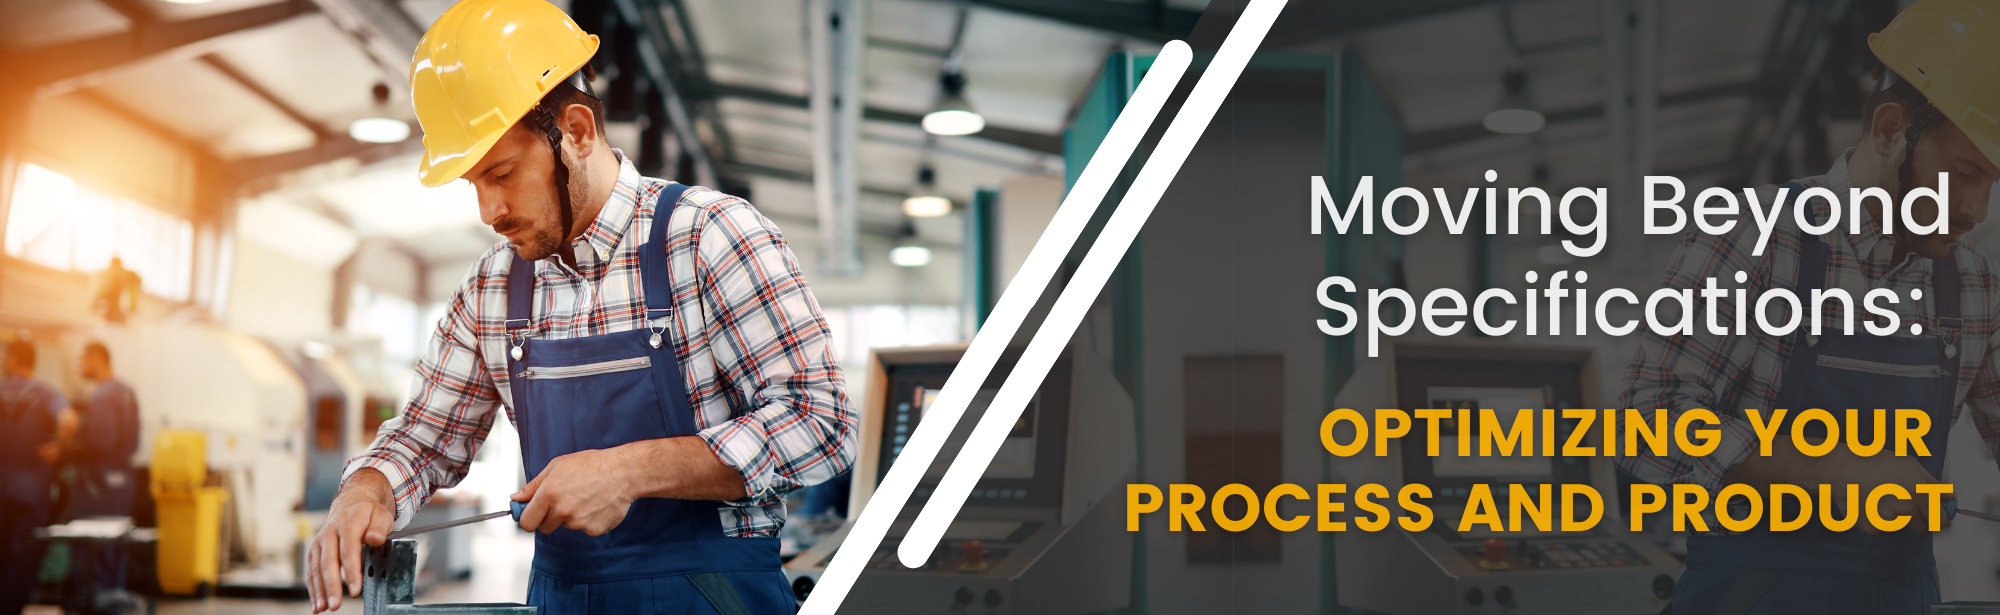 SPC- Optimizing your process and product